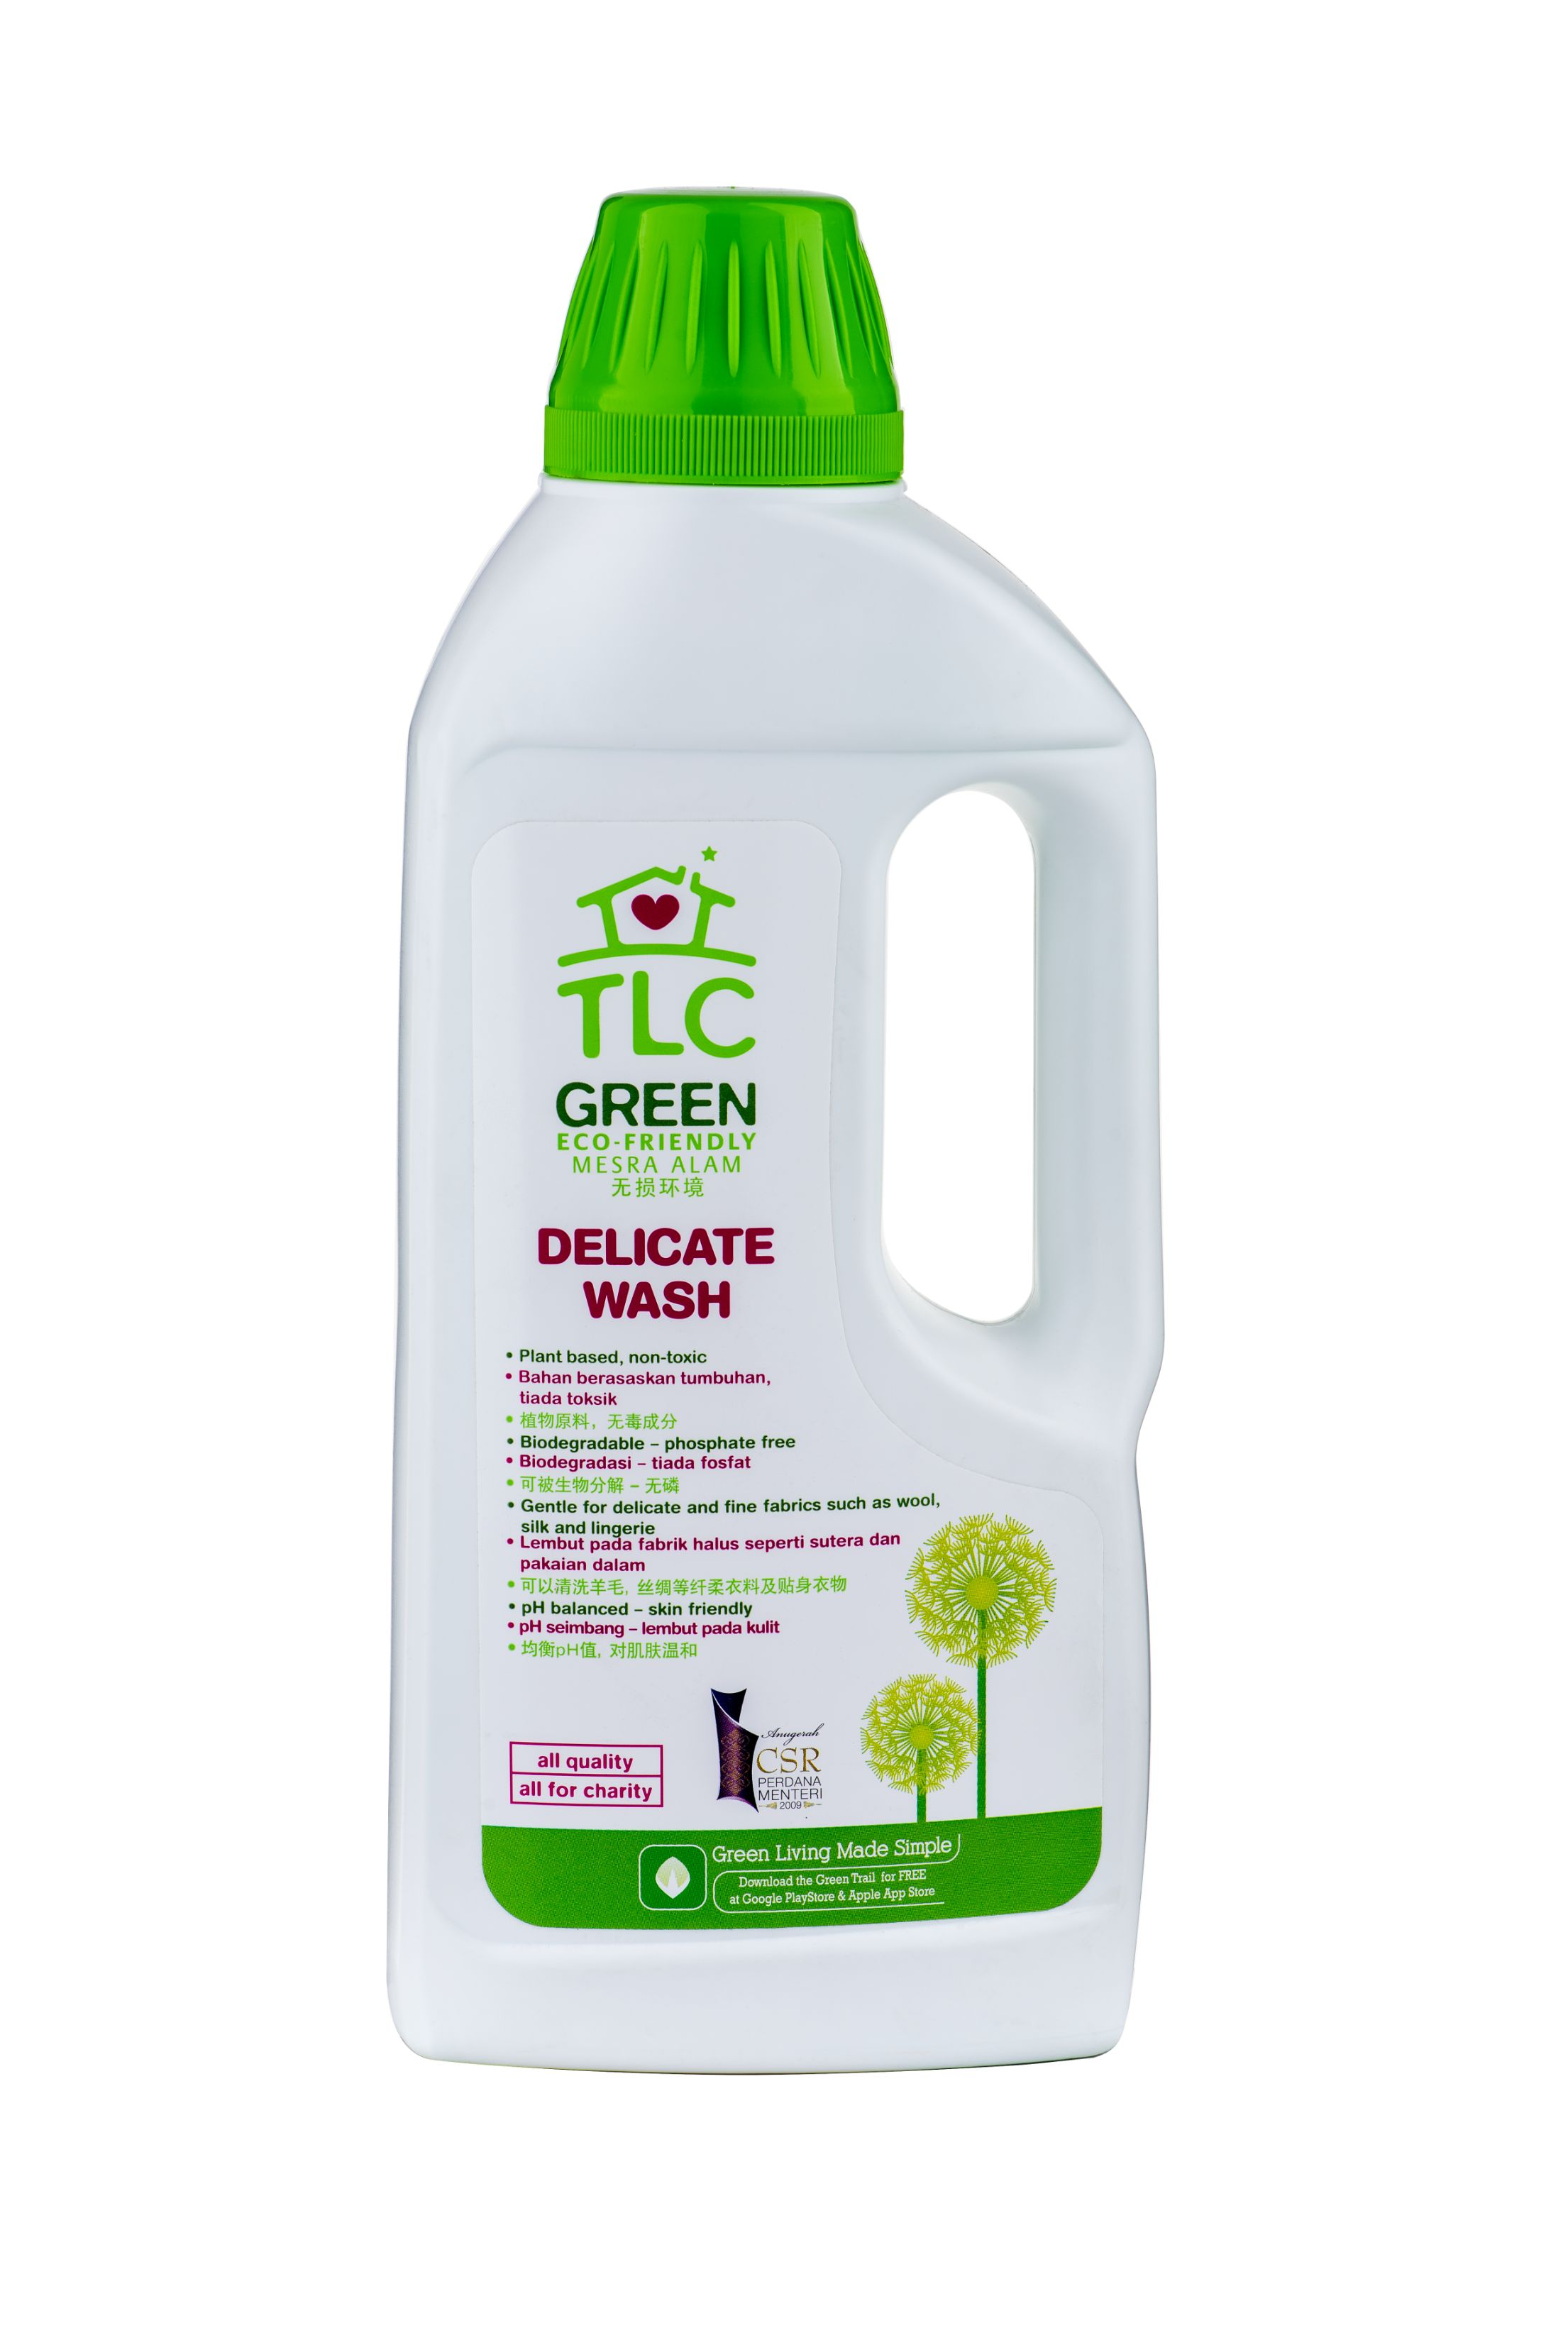 TLC Green Delicate Wash